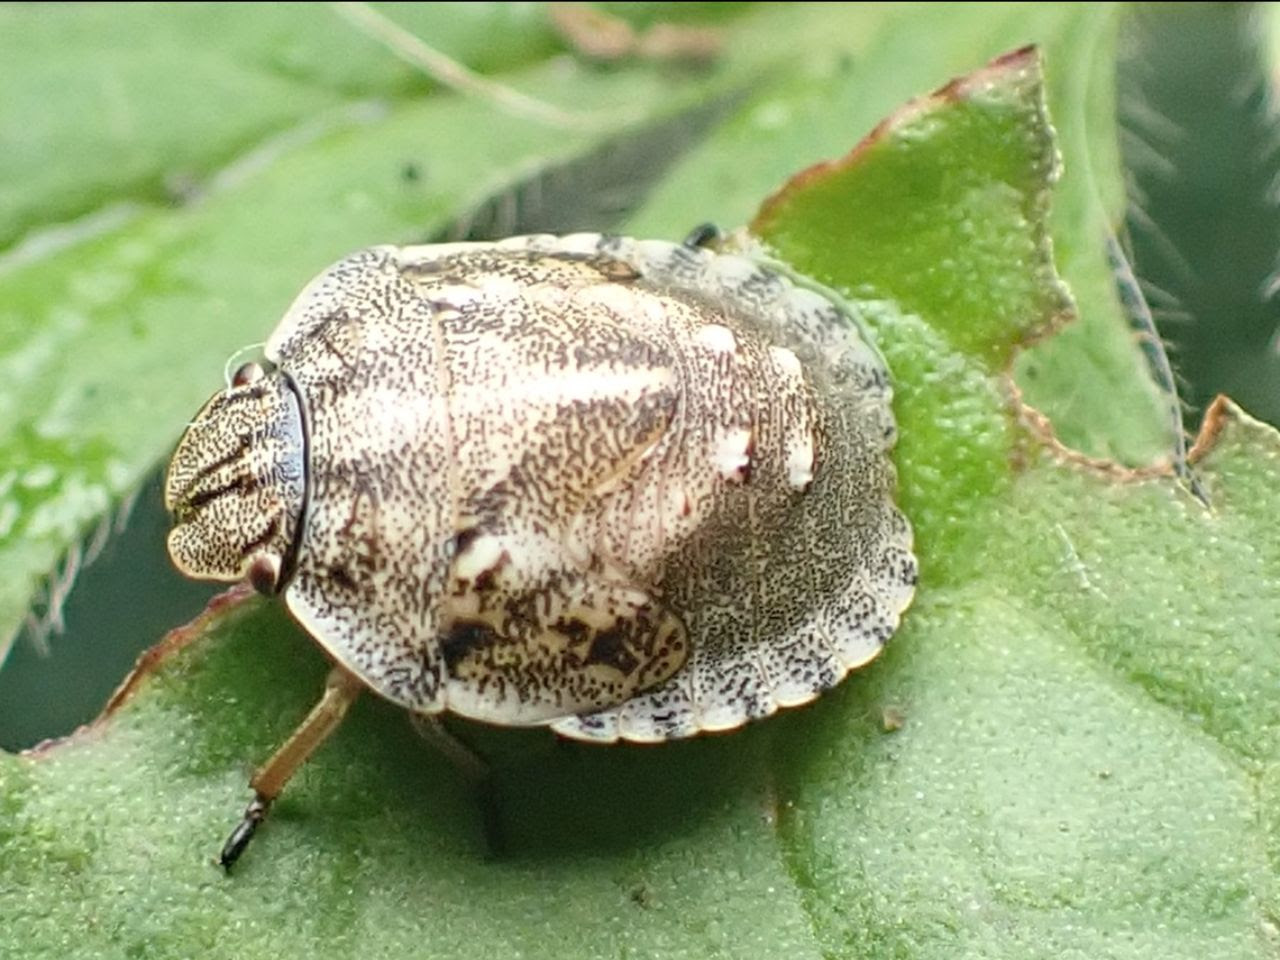 Nymph of Tortoise Shield Bug